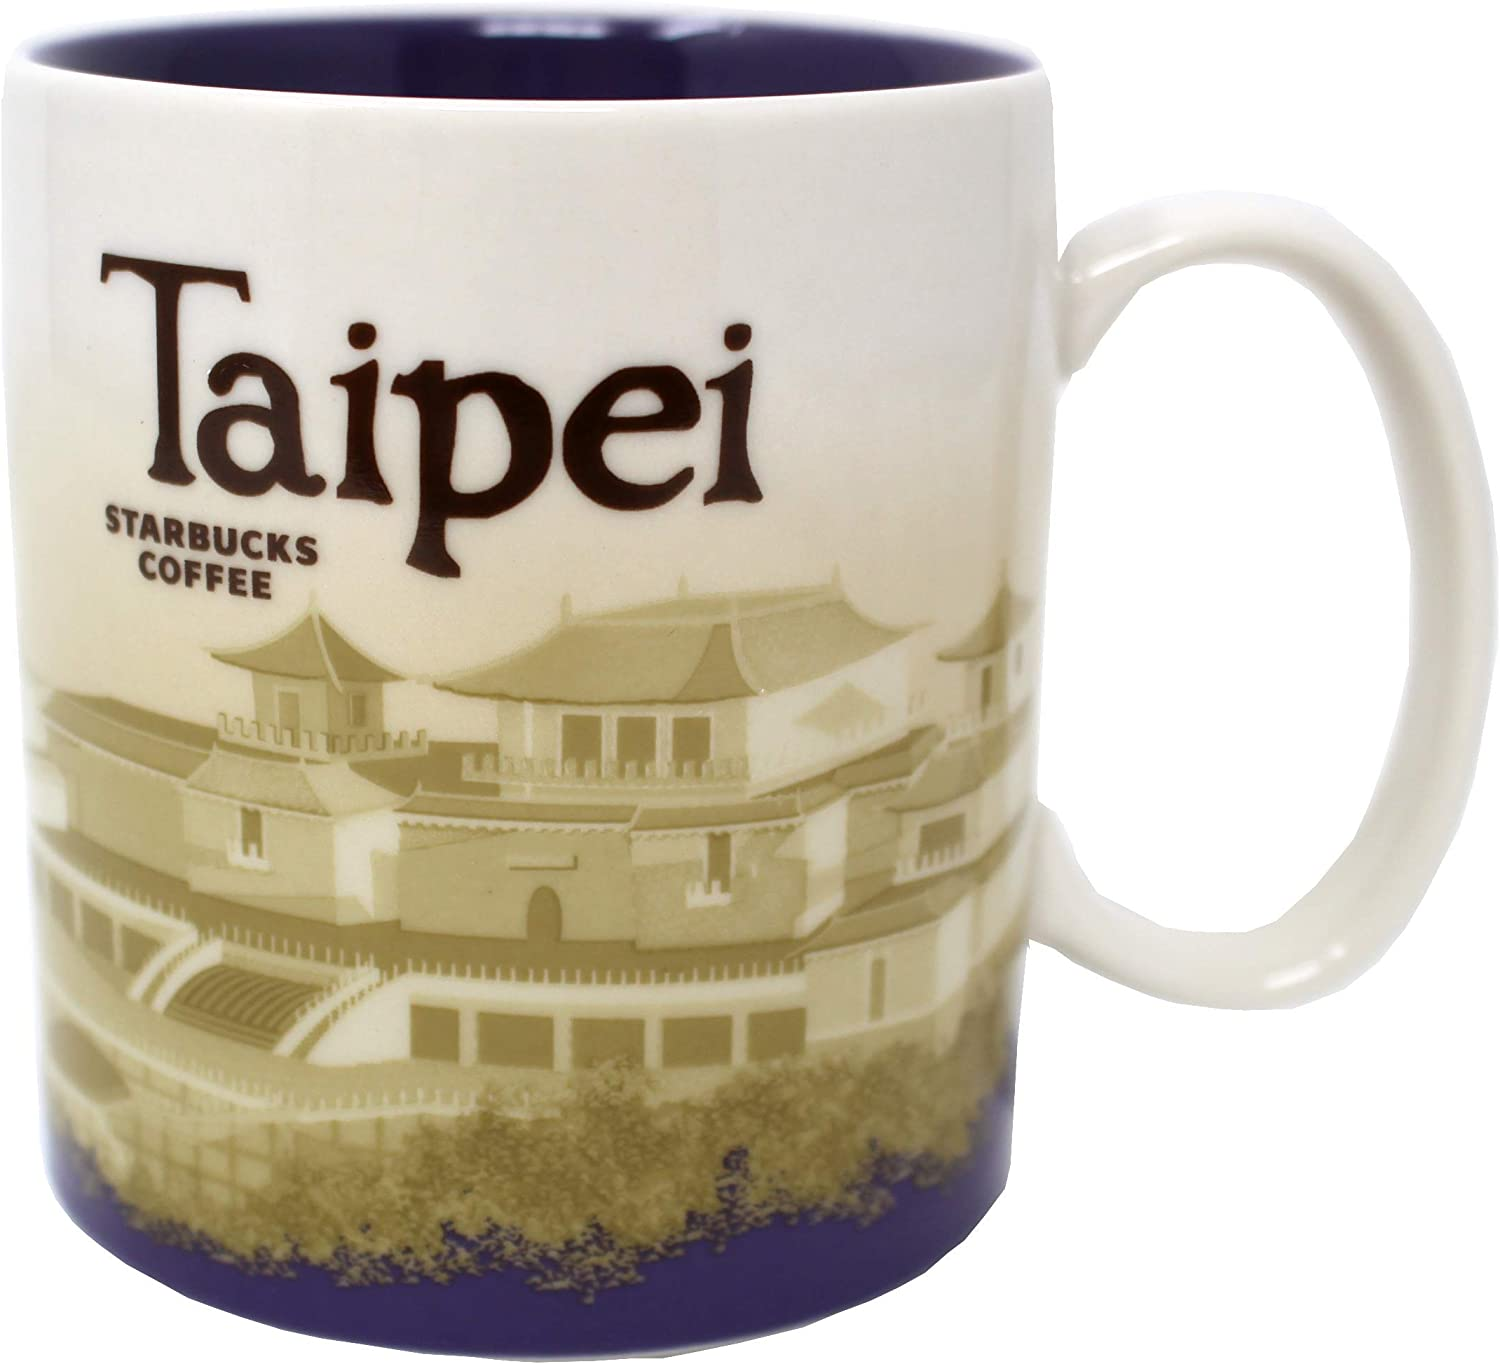 Starbucks Taipei Global Icon Mug, 16 Oz